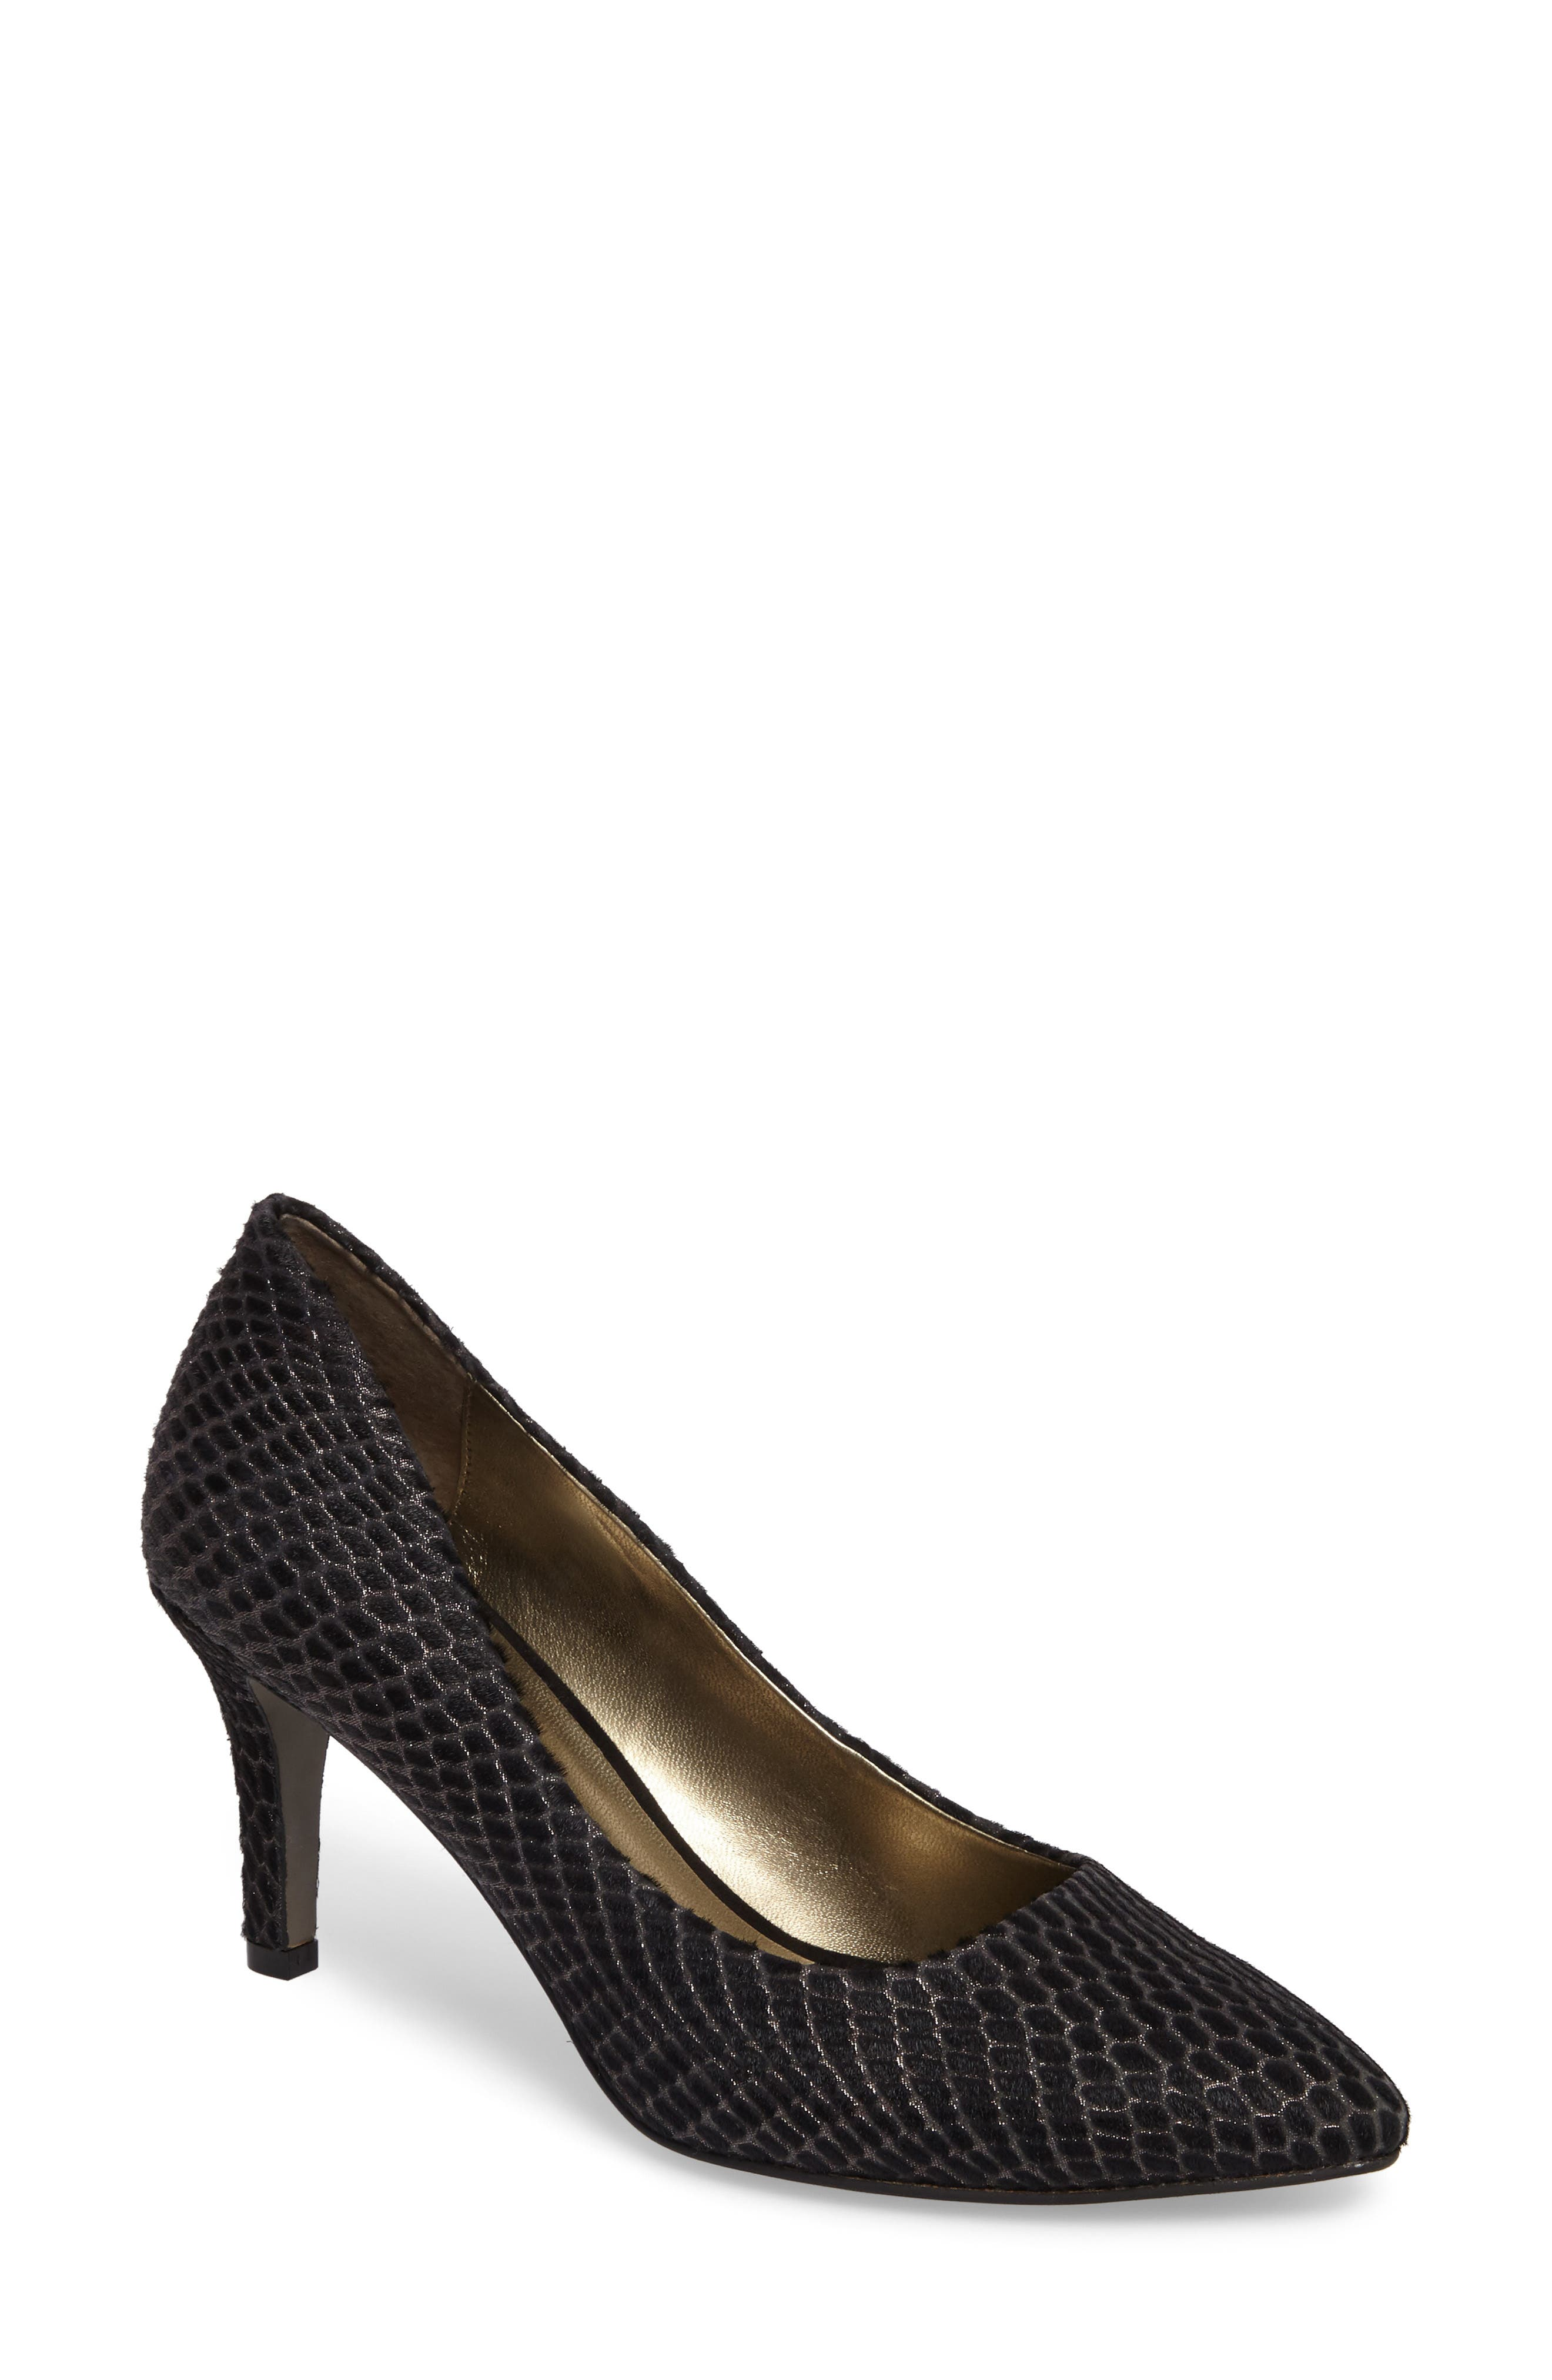 Symphony Pointy Toe Pump,                             Main thumbnail 1, color,                             Black Leather